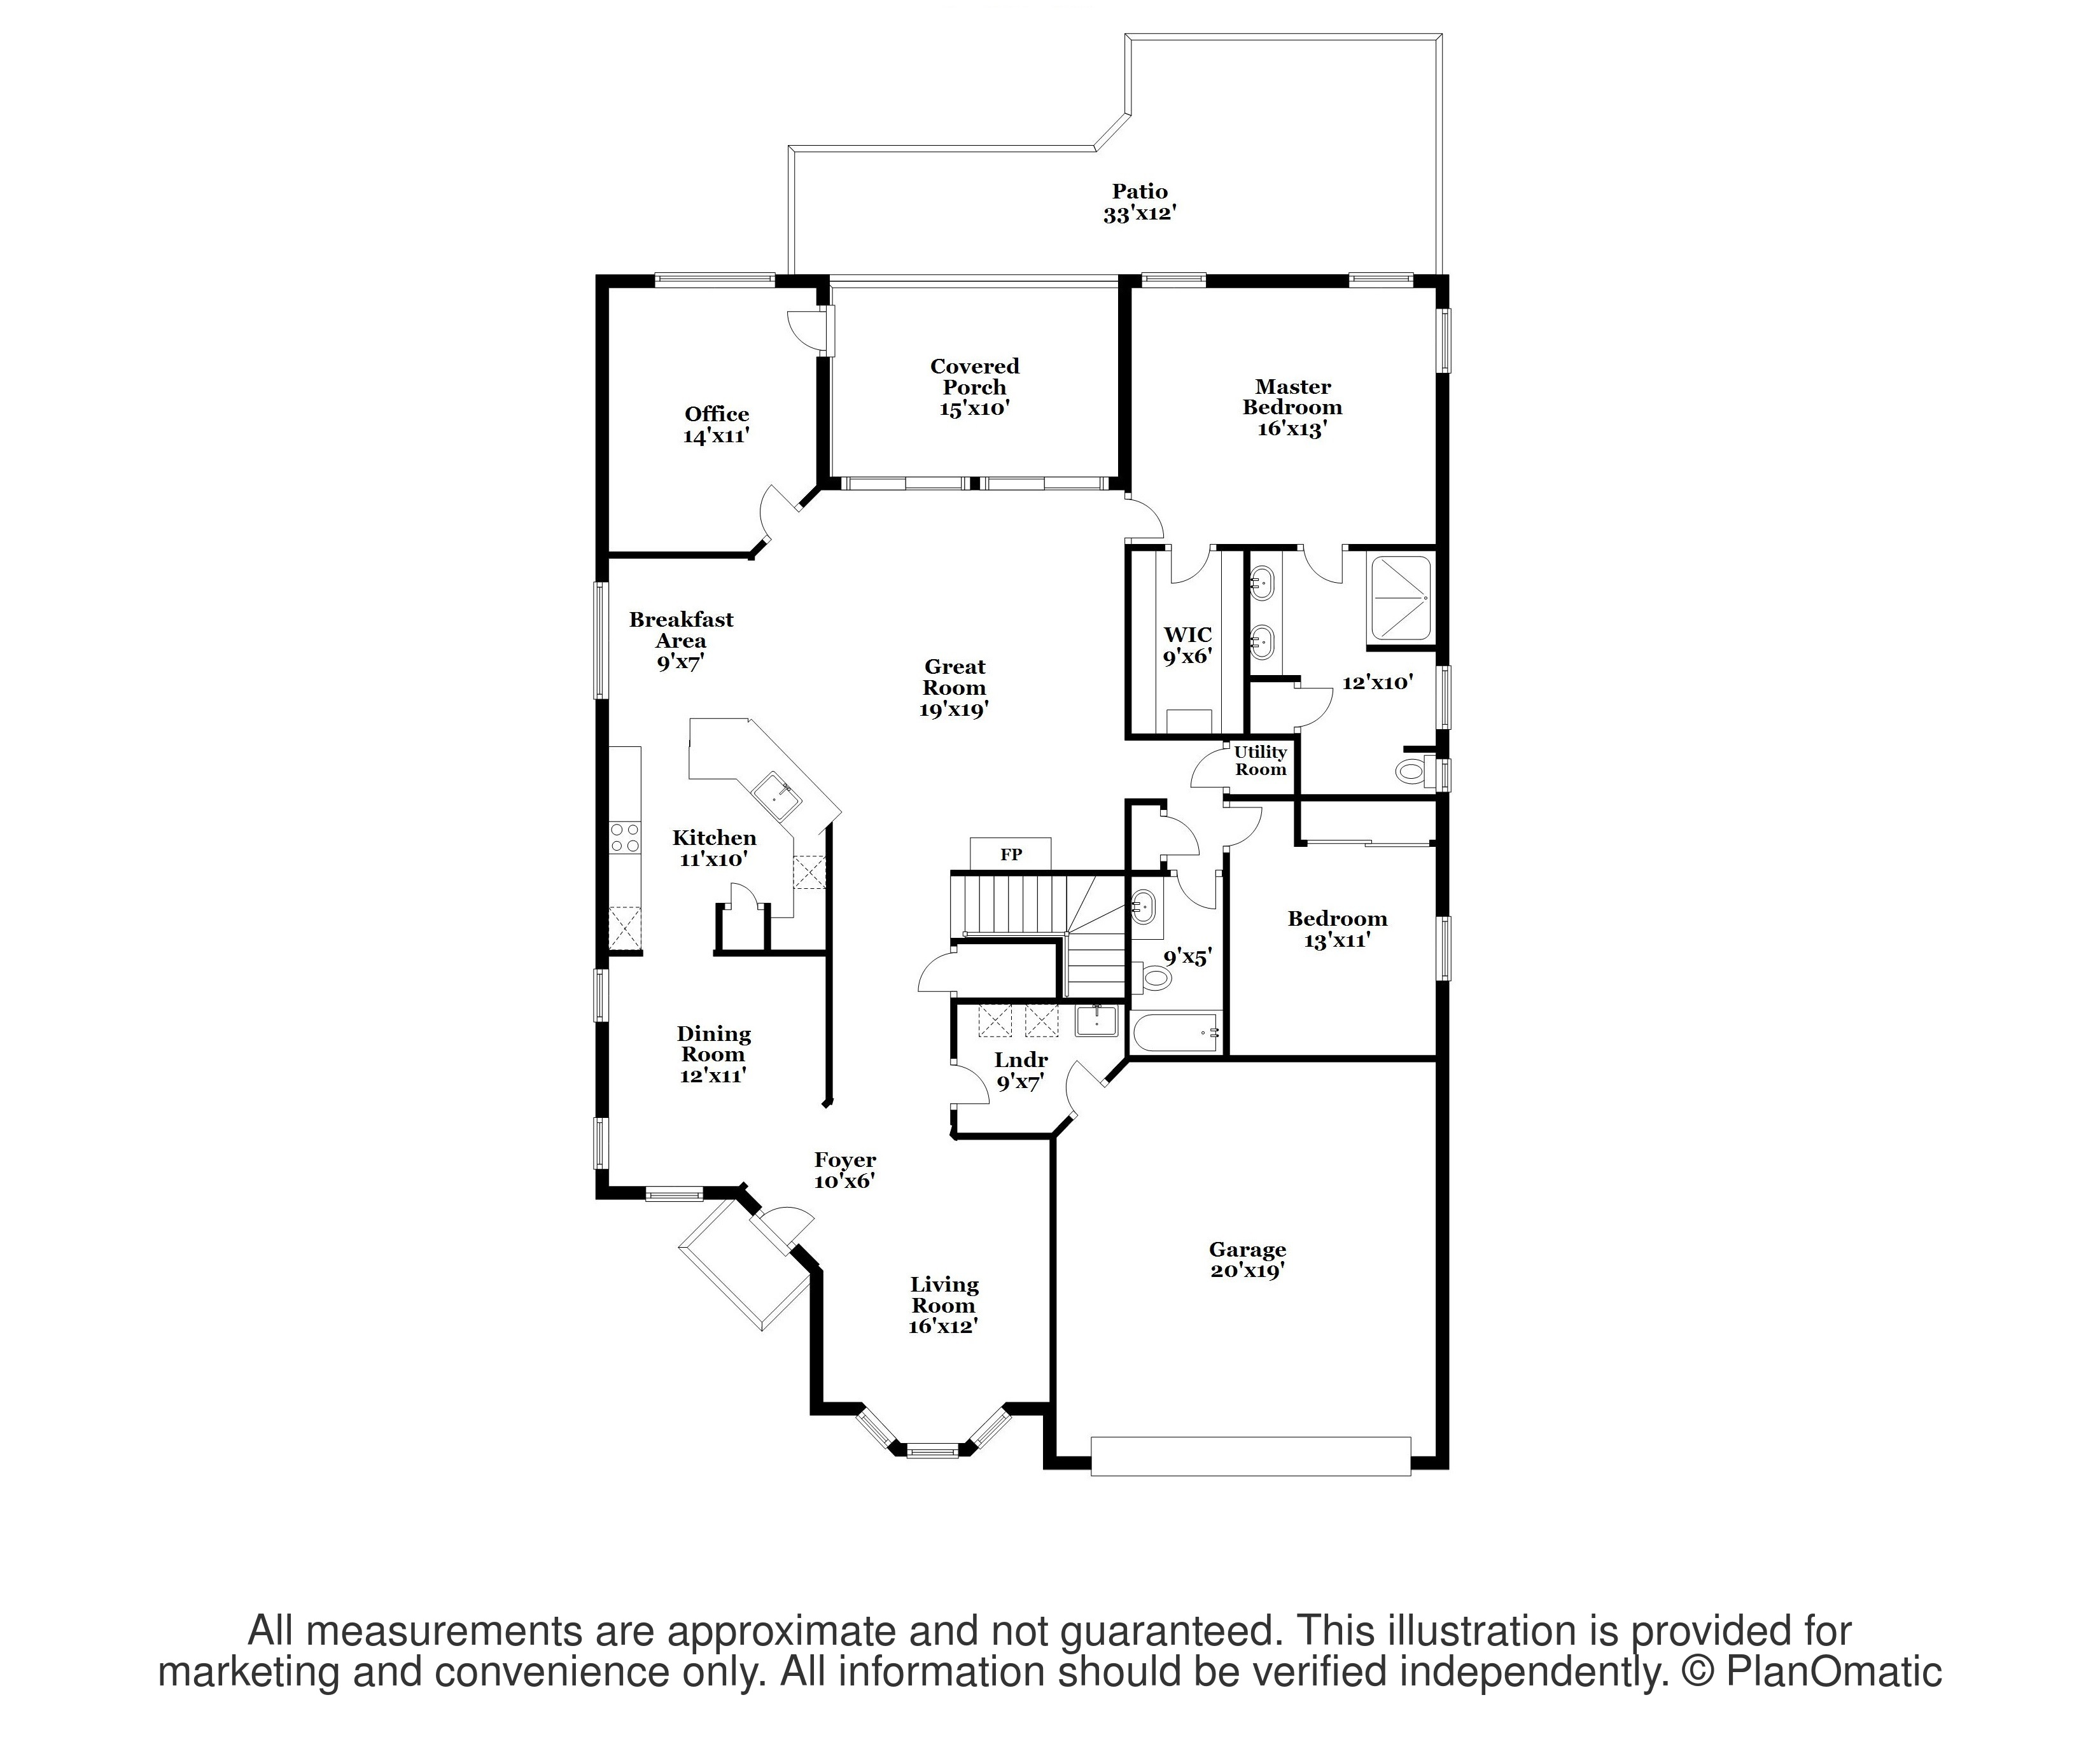 Single Family Homes for Sale at Prime Location in Wellington Manor 77 Lexington Drive, Pennington, New Jersey 08534 United States